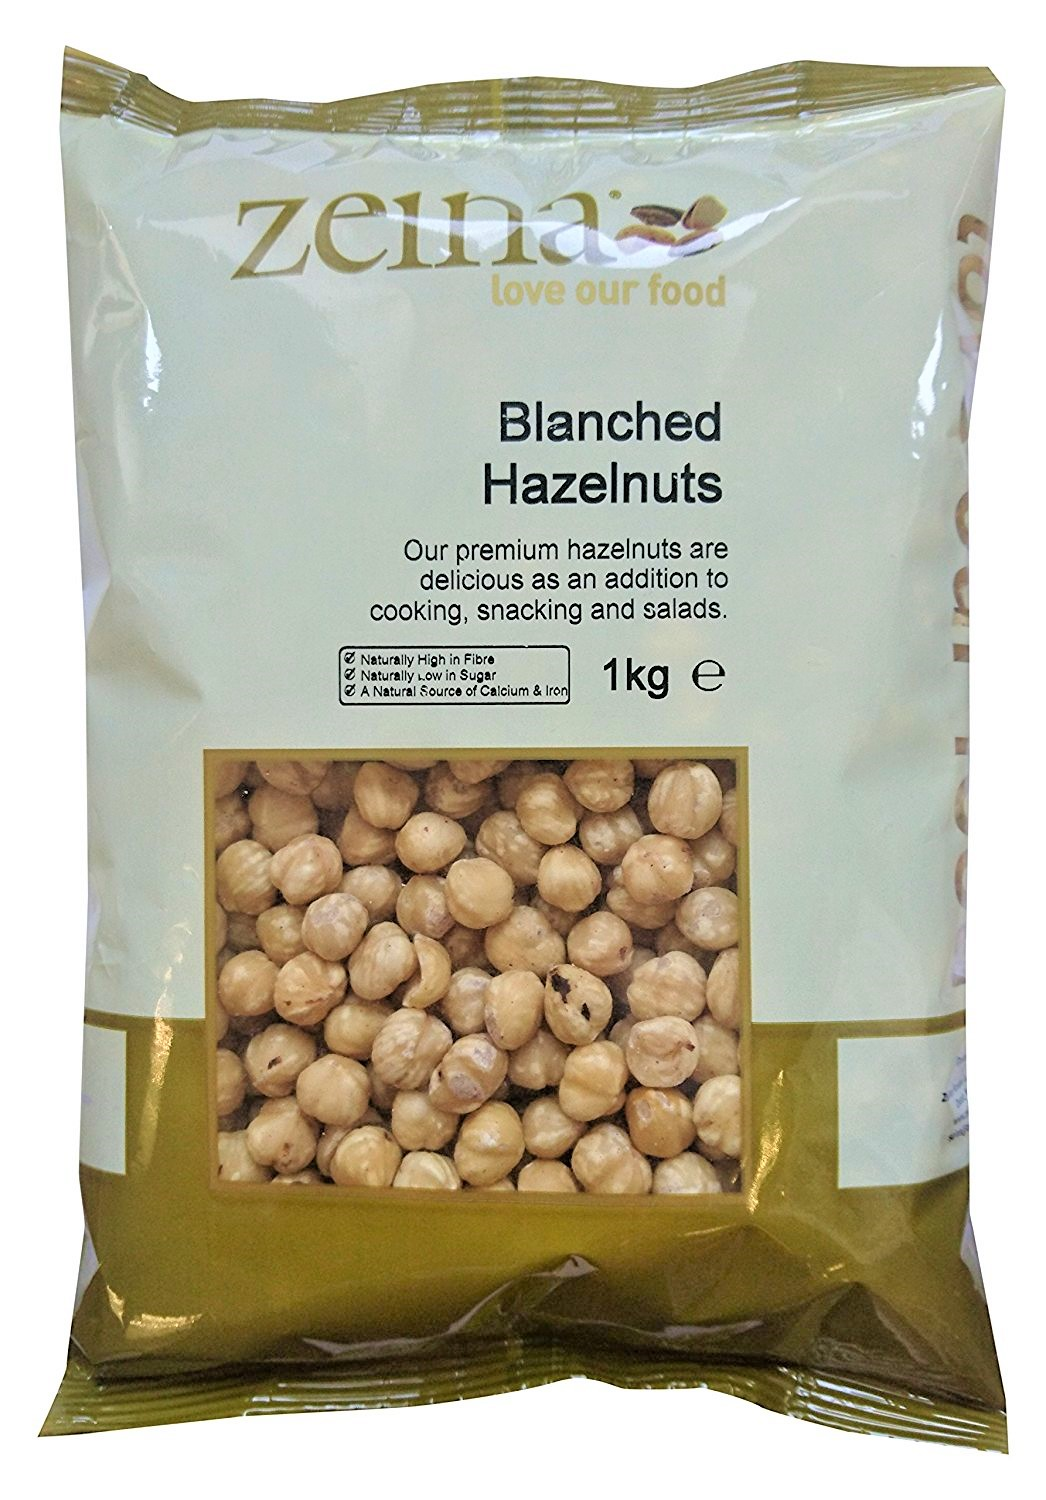 Blanched Hazelnuts